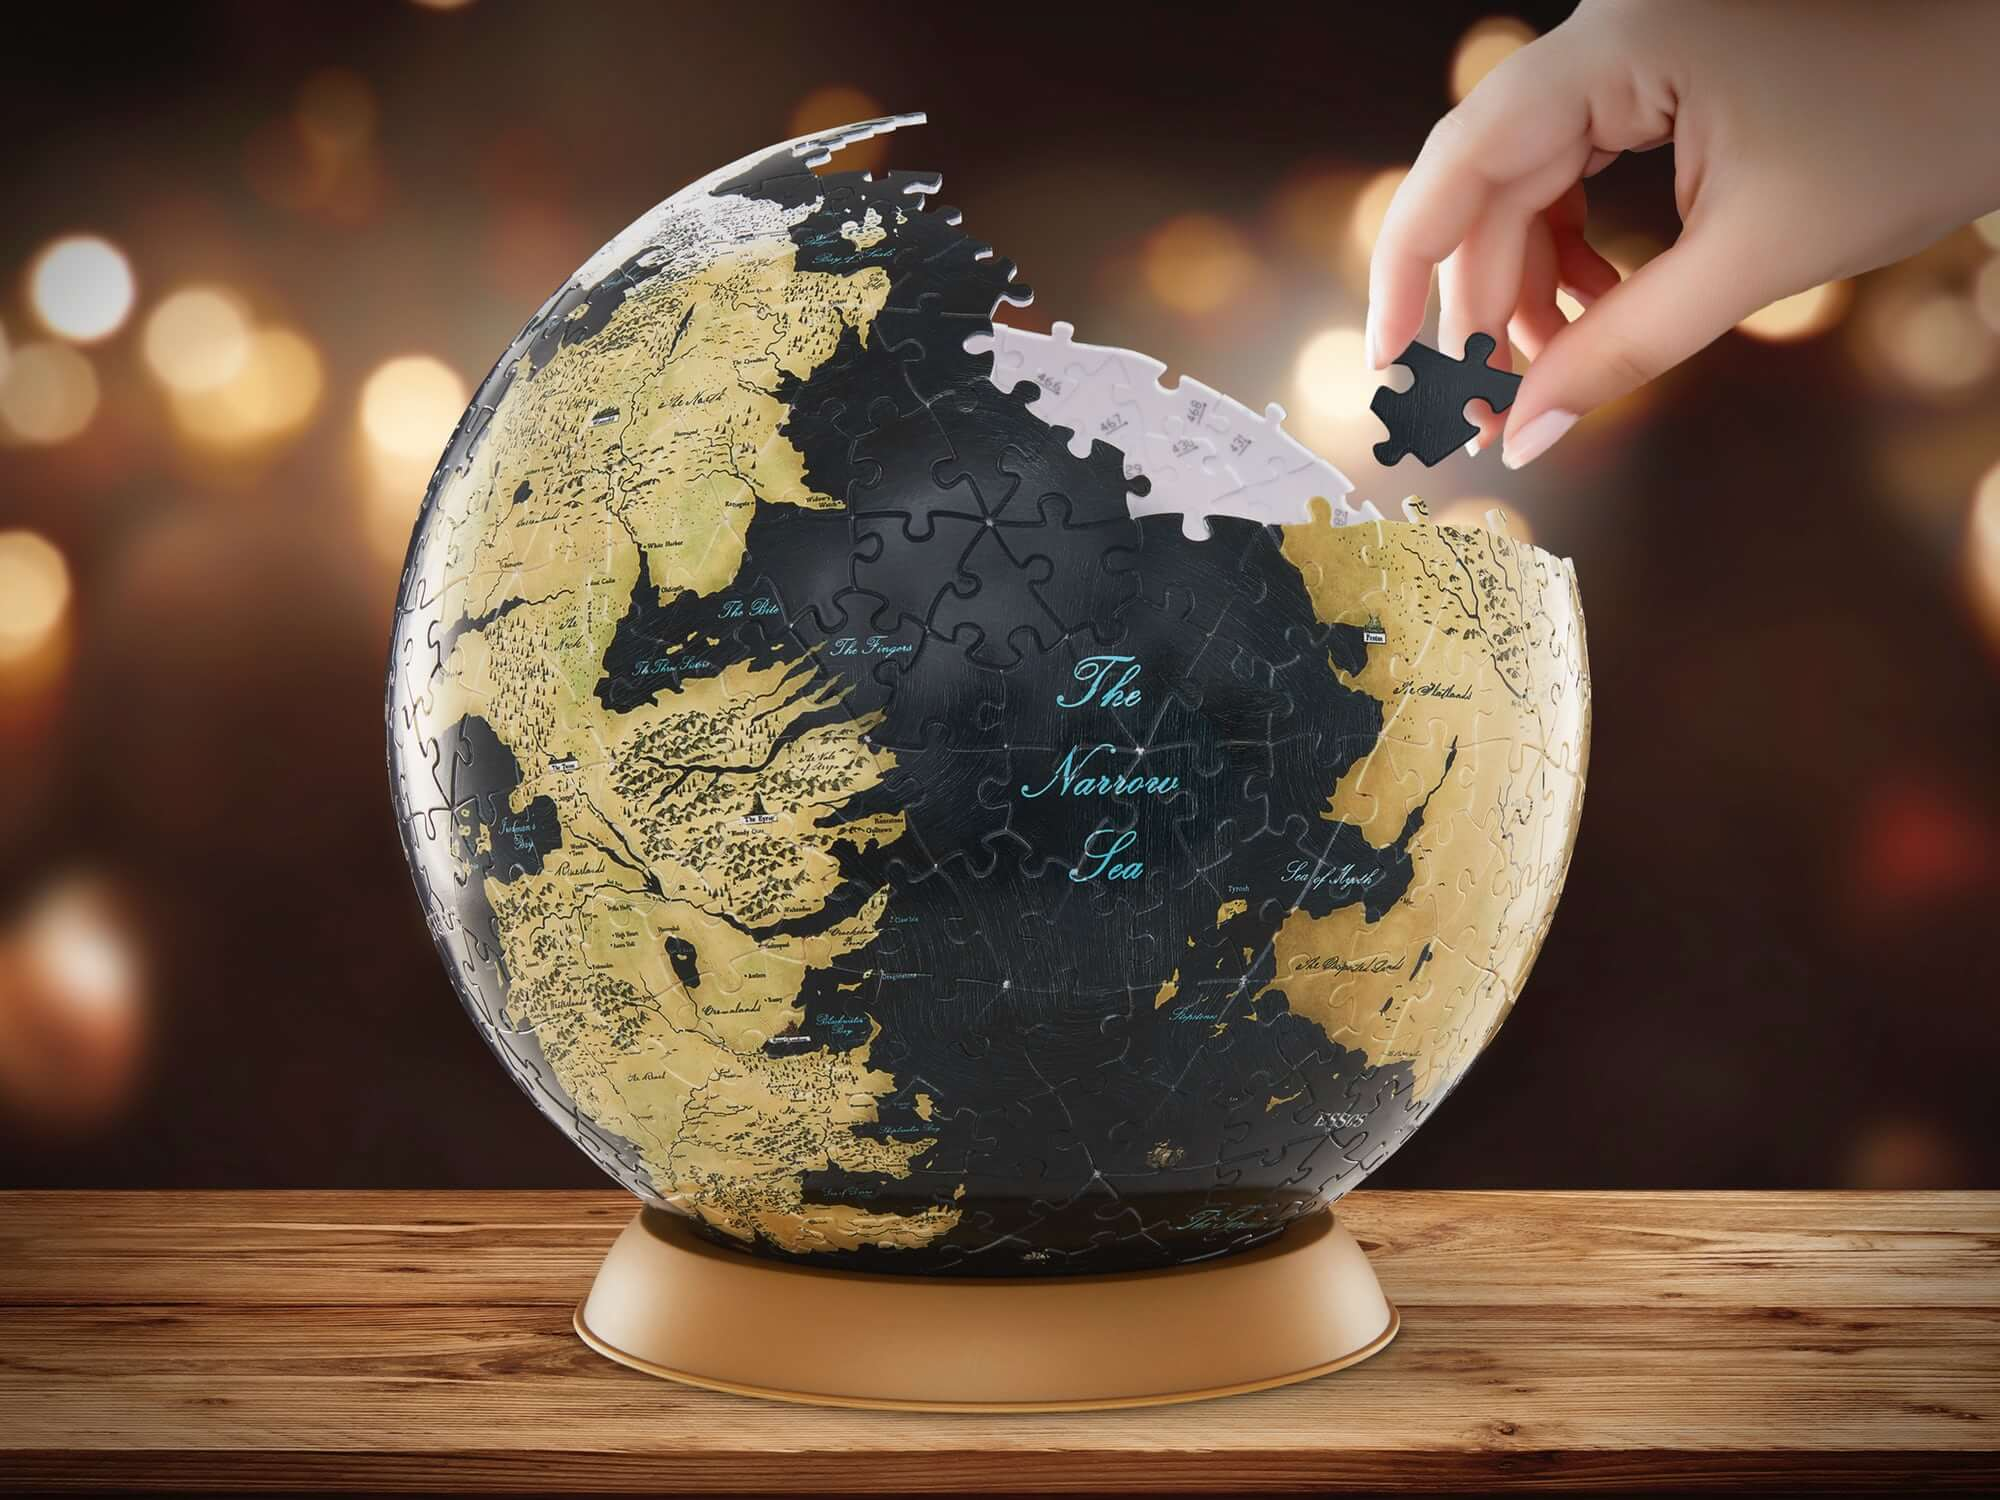 Globe Puzzle 3D Westeros and Essos 9-inch Puzzle